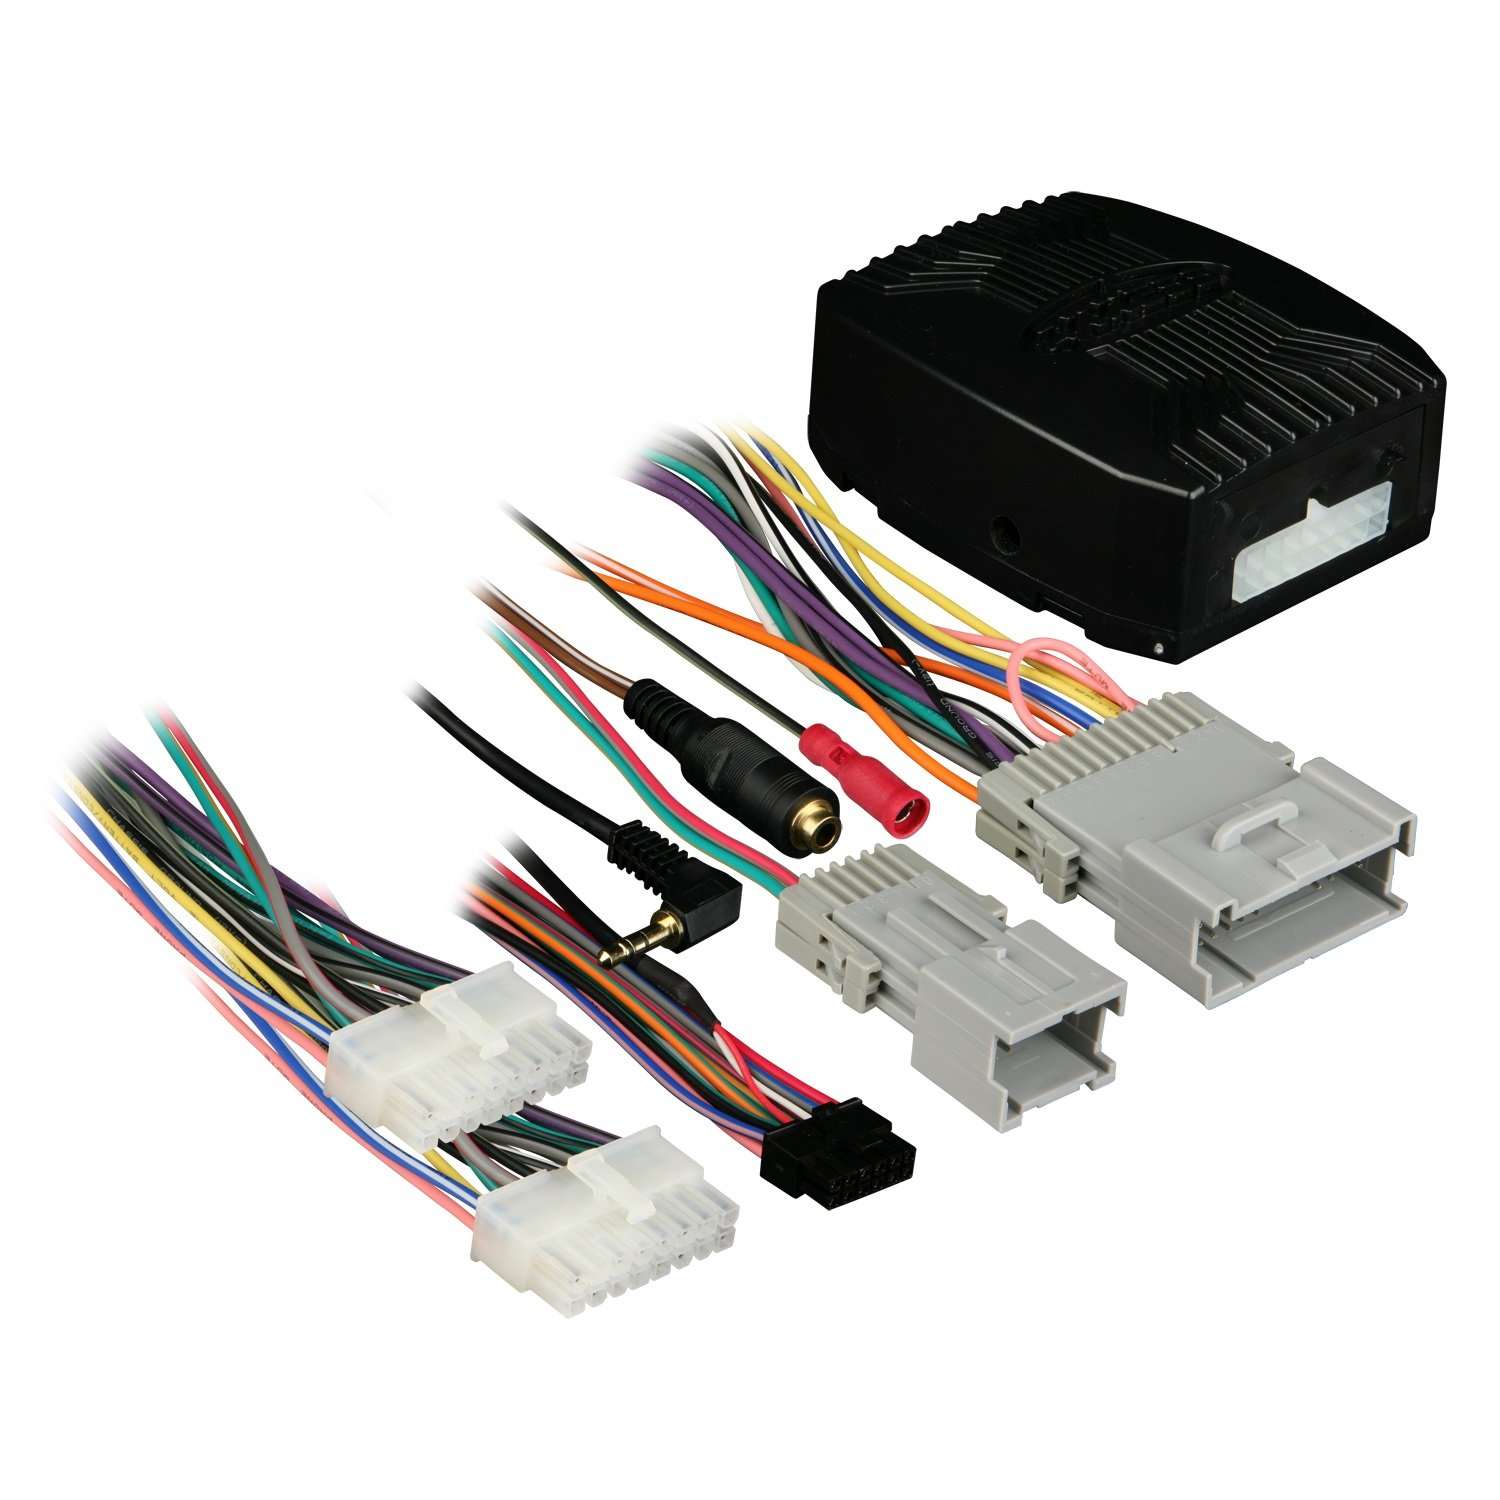 Gmos 01 02 Up Onstar Wiring Harness W Chime 43 Diagram Sl1500 Amazon Com Axxess Adapter With